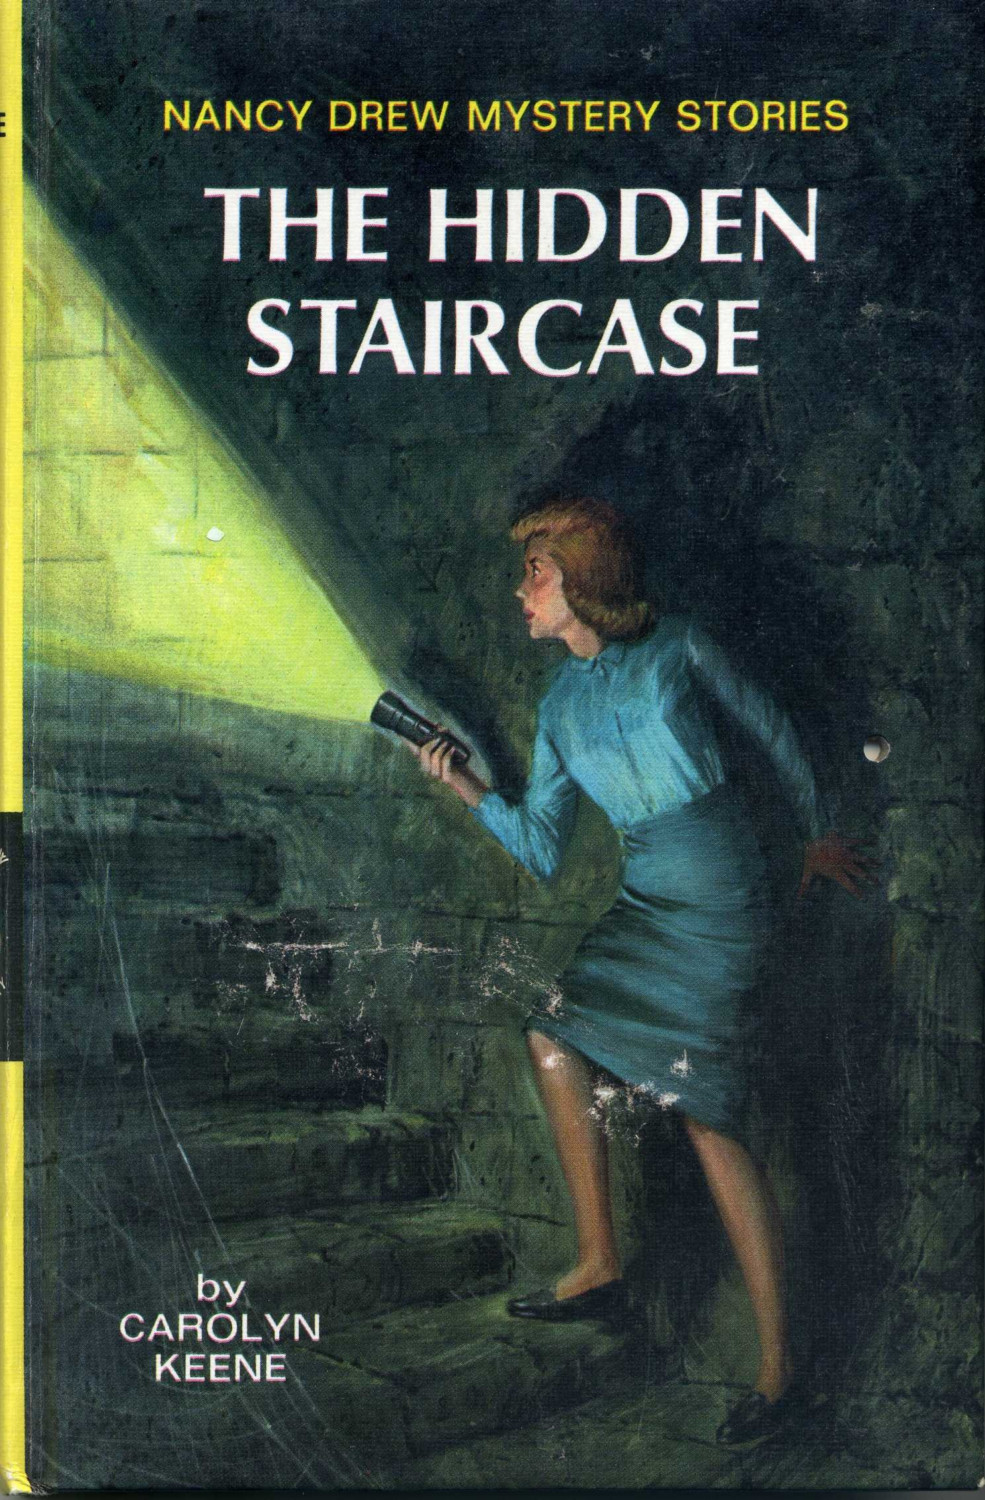 the hidden staircase by carolyn keene.jpg